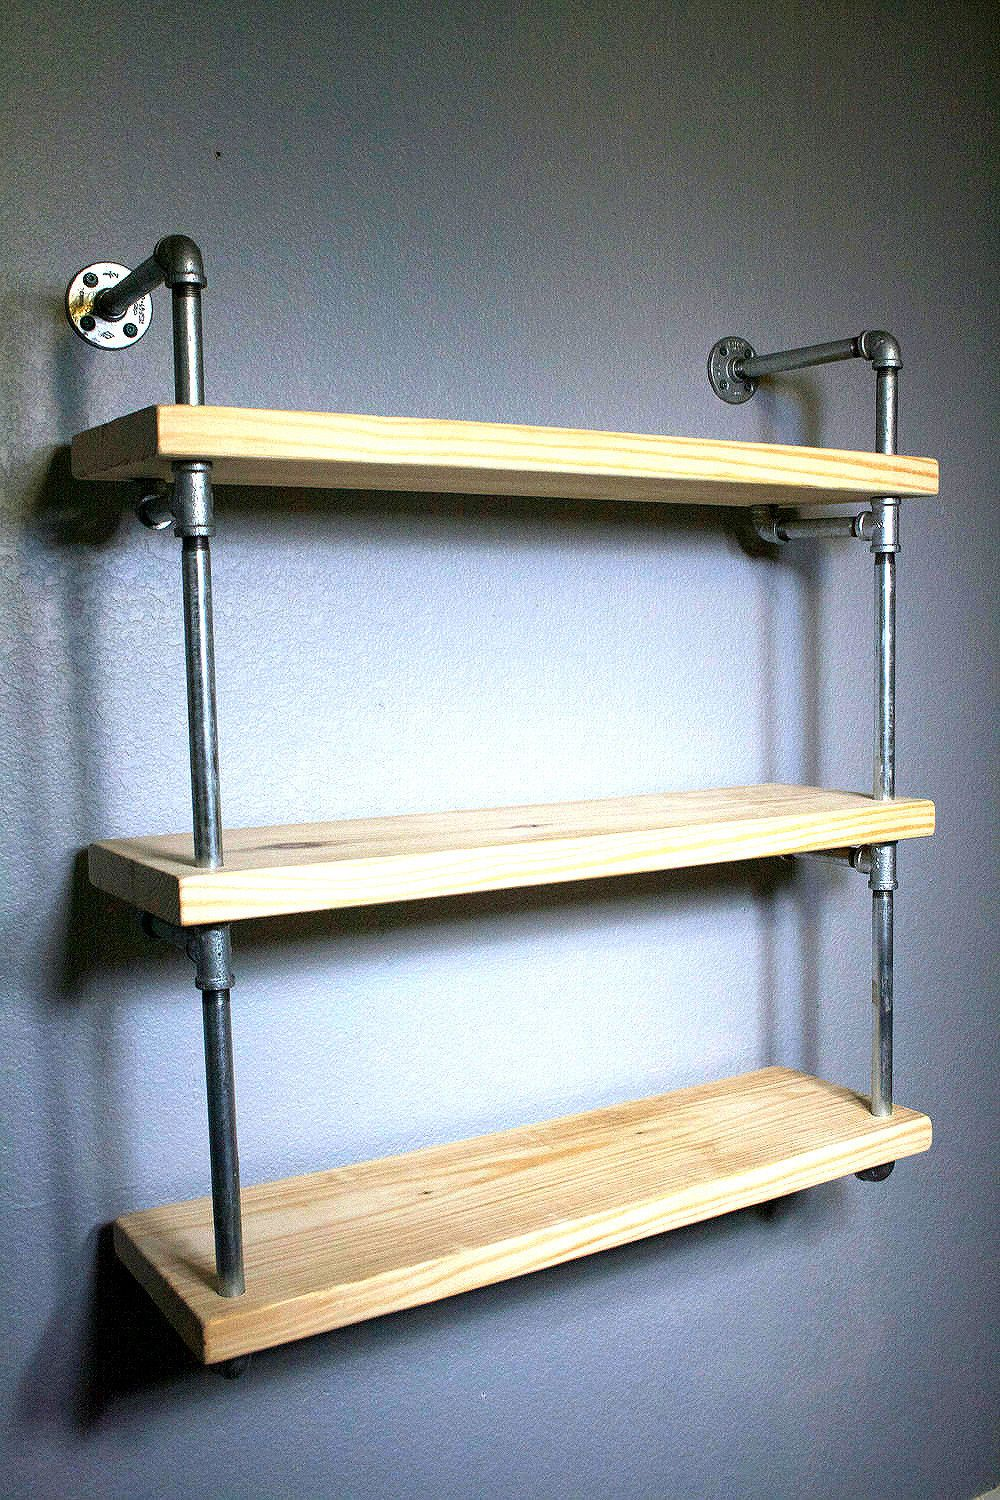 Raw industrial wall mounted pipe shelf ideas for the - Wall mounted shelving ideas ...